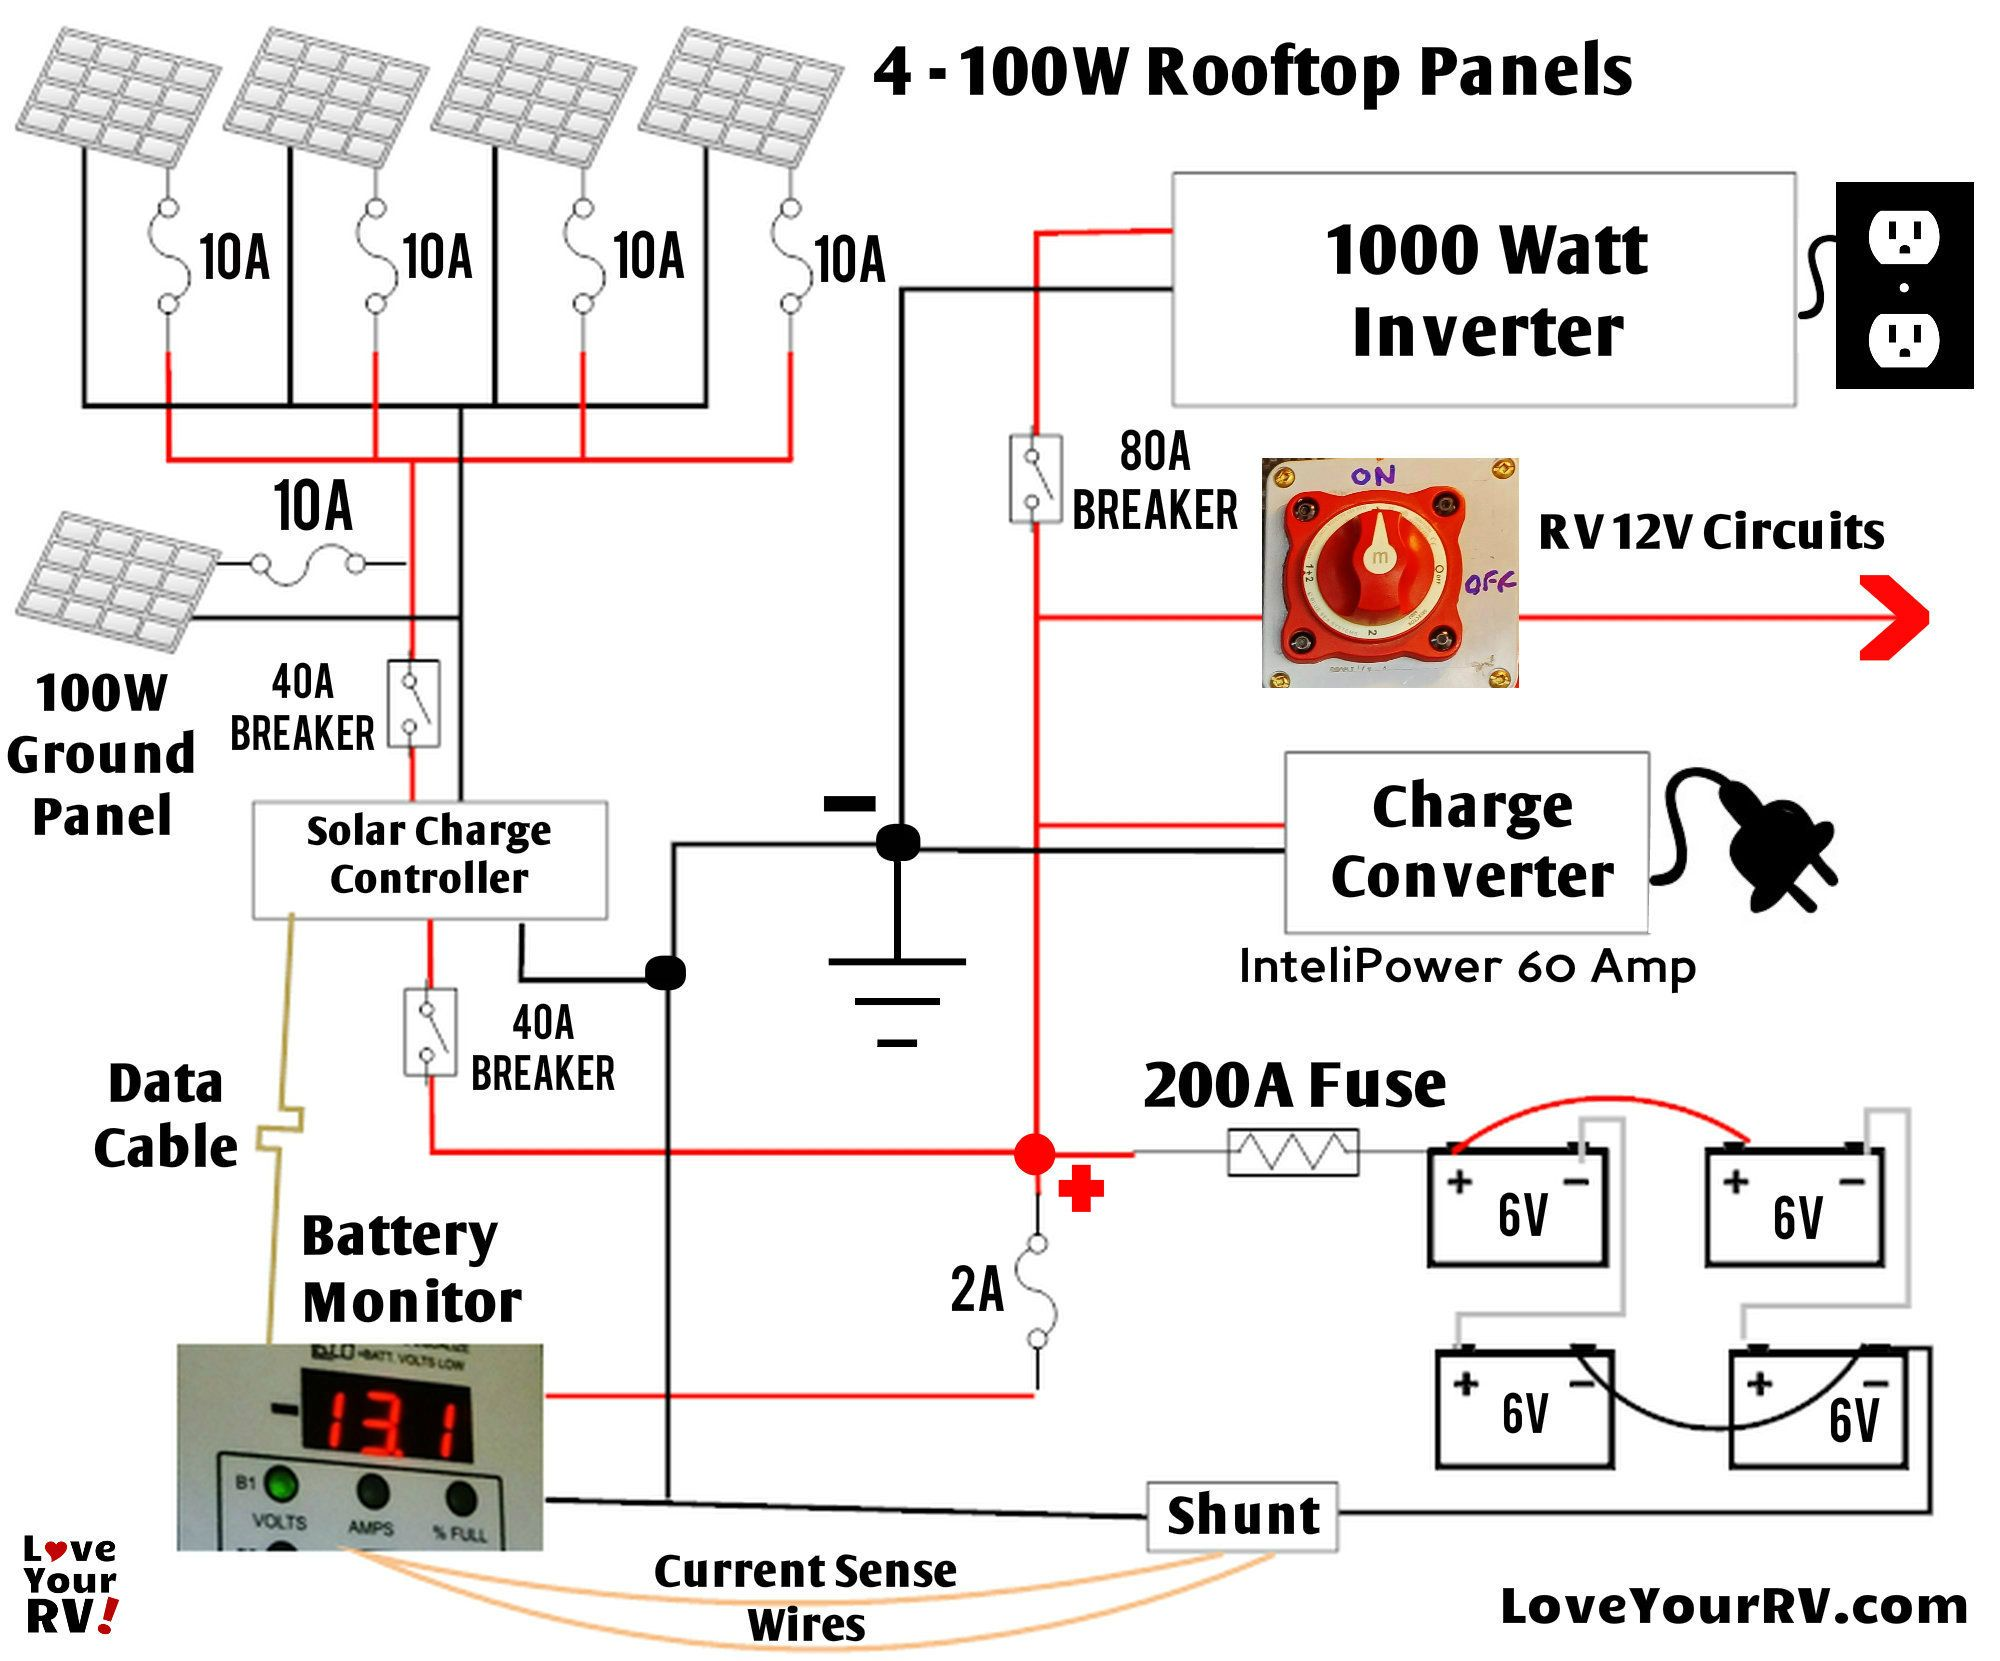 Magnetek Power Converter Wiring Diagram on